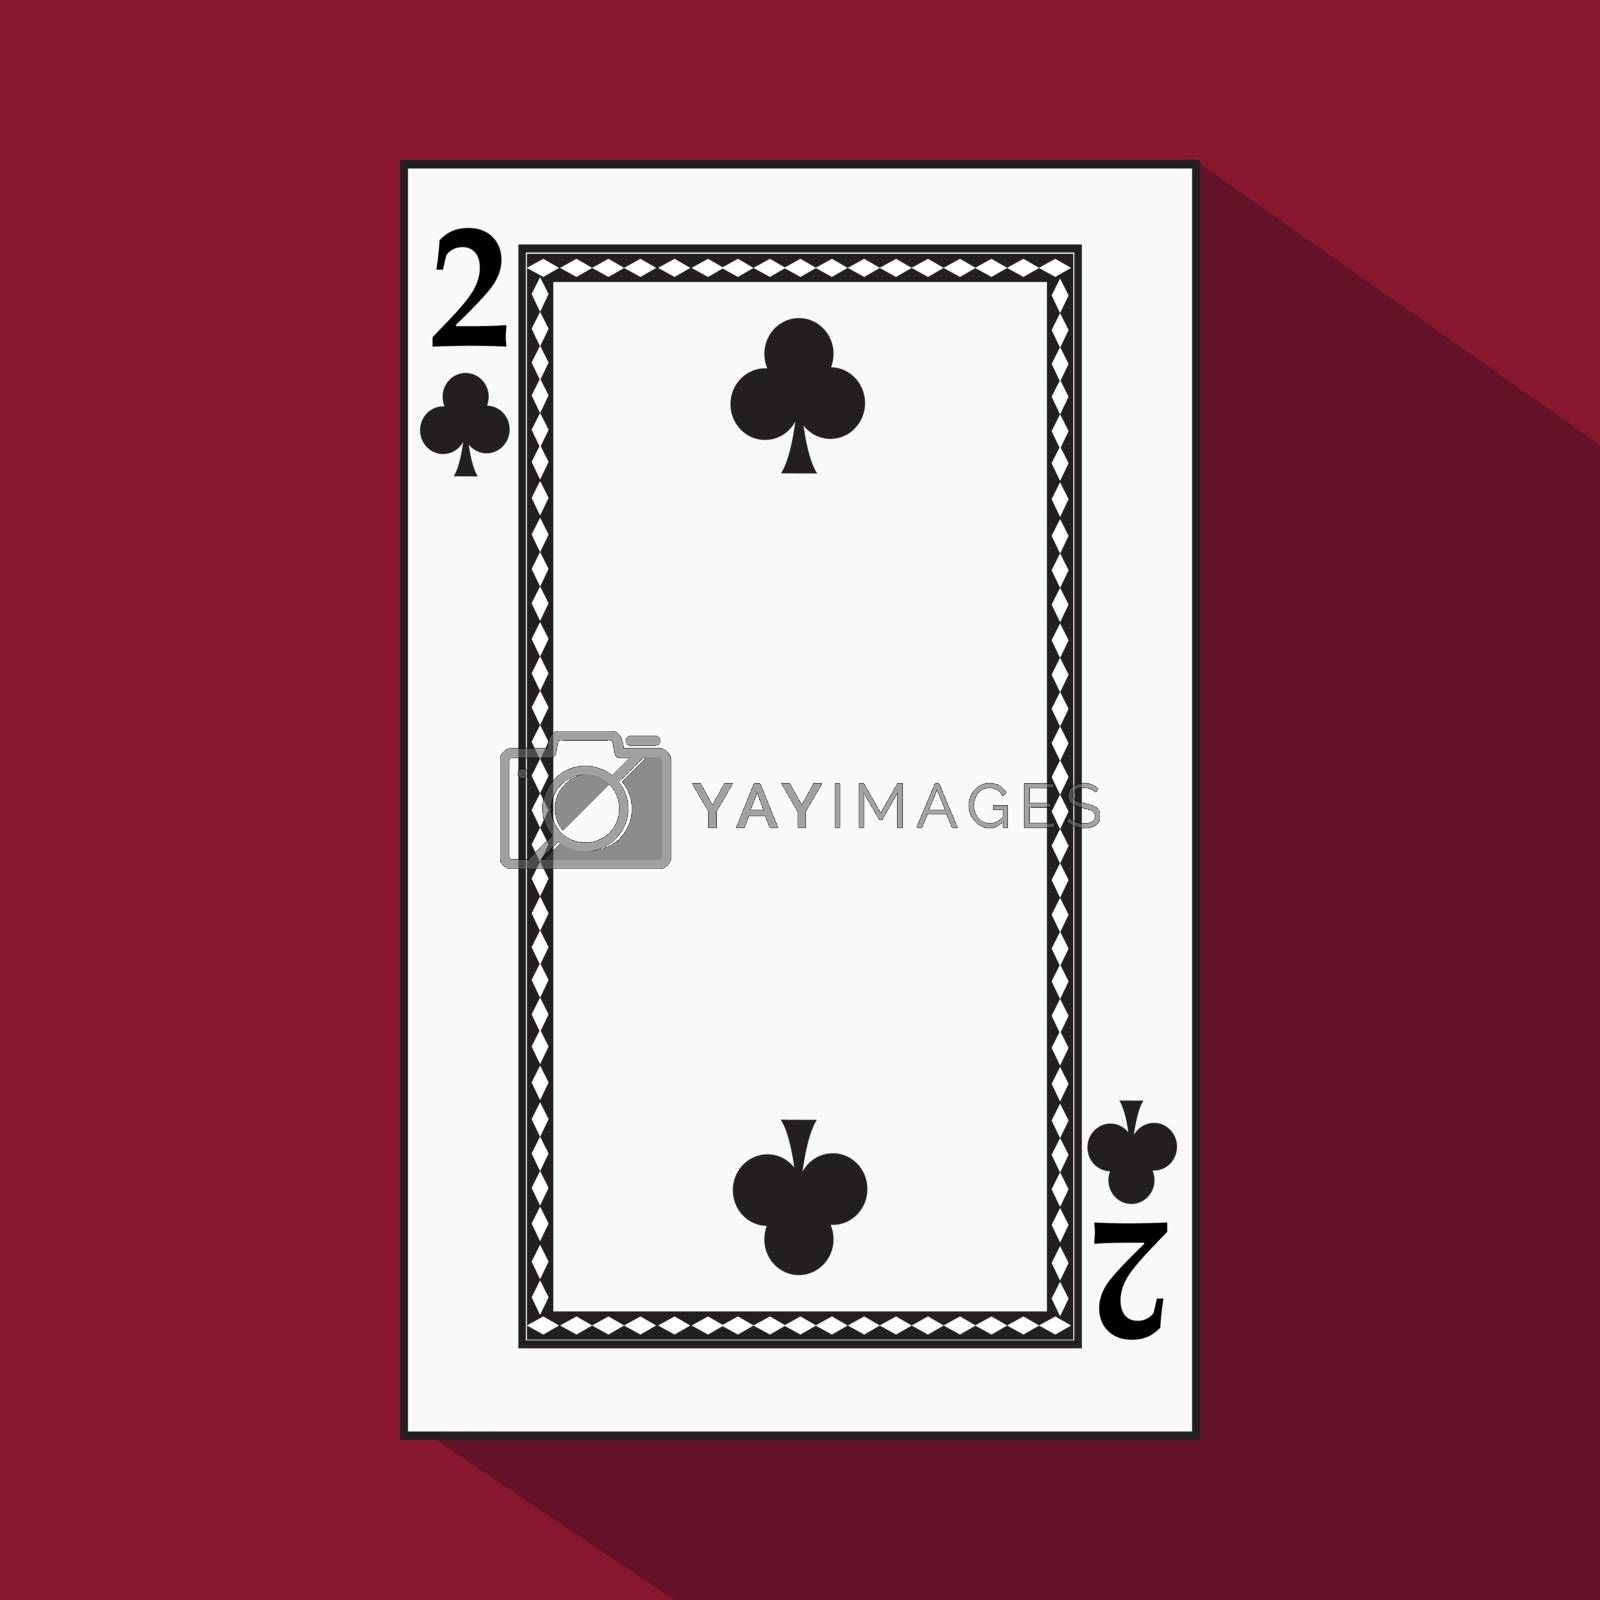 playing card. the icon picture is easy. peak spide TWO 2 with white a basis substrate. a vector illustration on a red background. application appointment for website, press, t-shirt, fabric, interior, registration, design